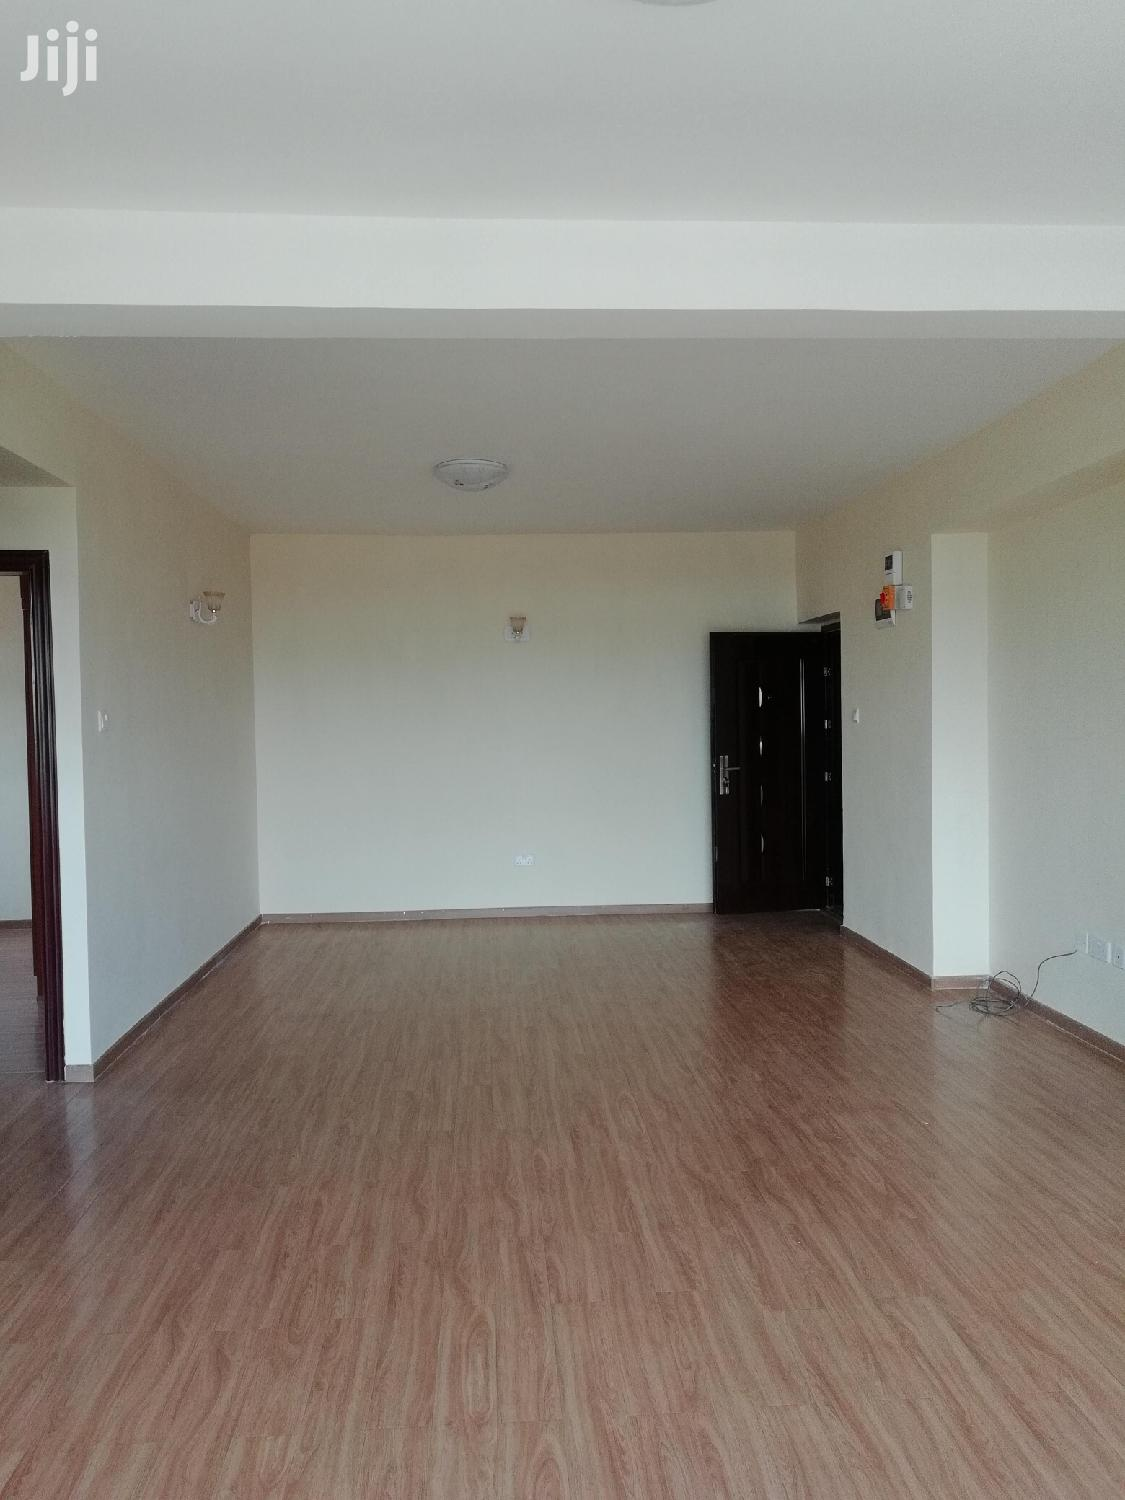 Property World;2brs Apartment With Gym,Pool,Lift and Secure